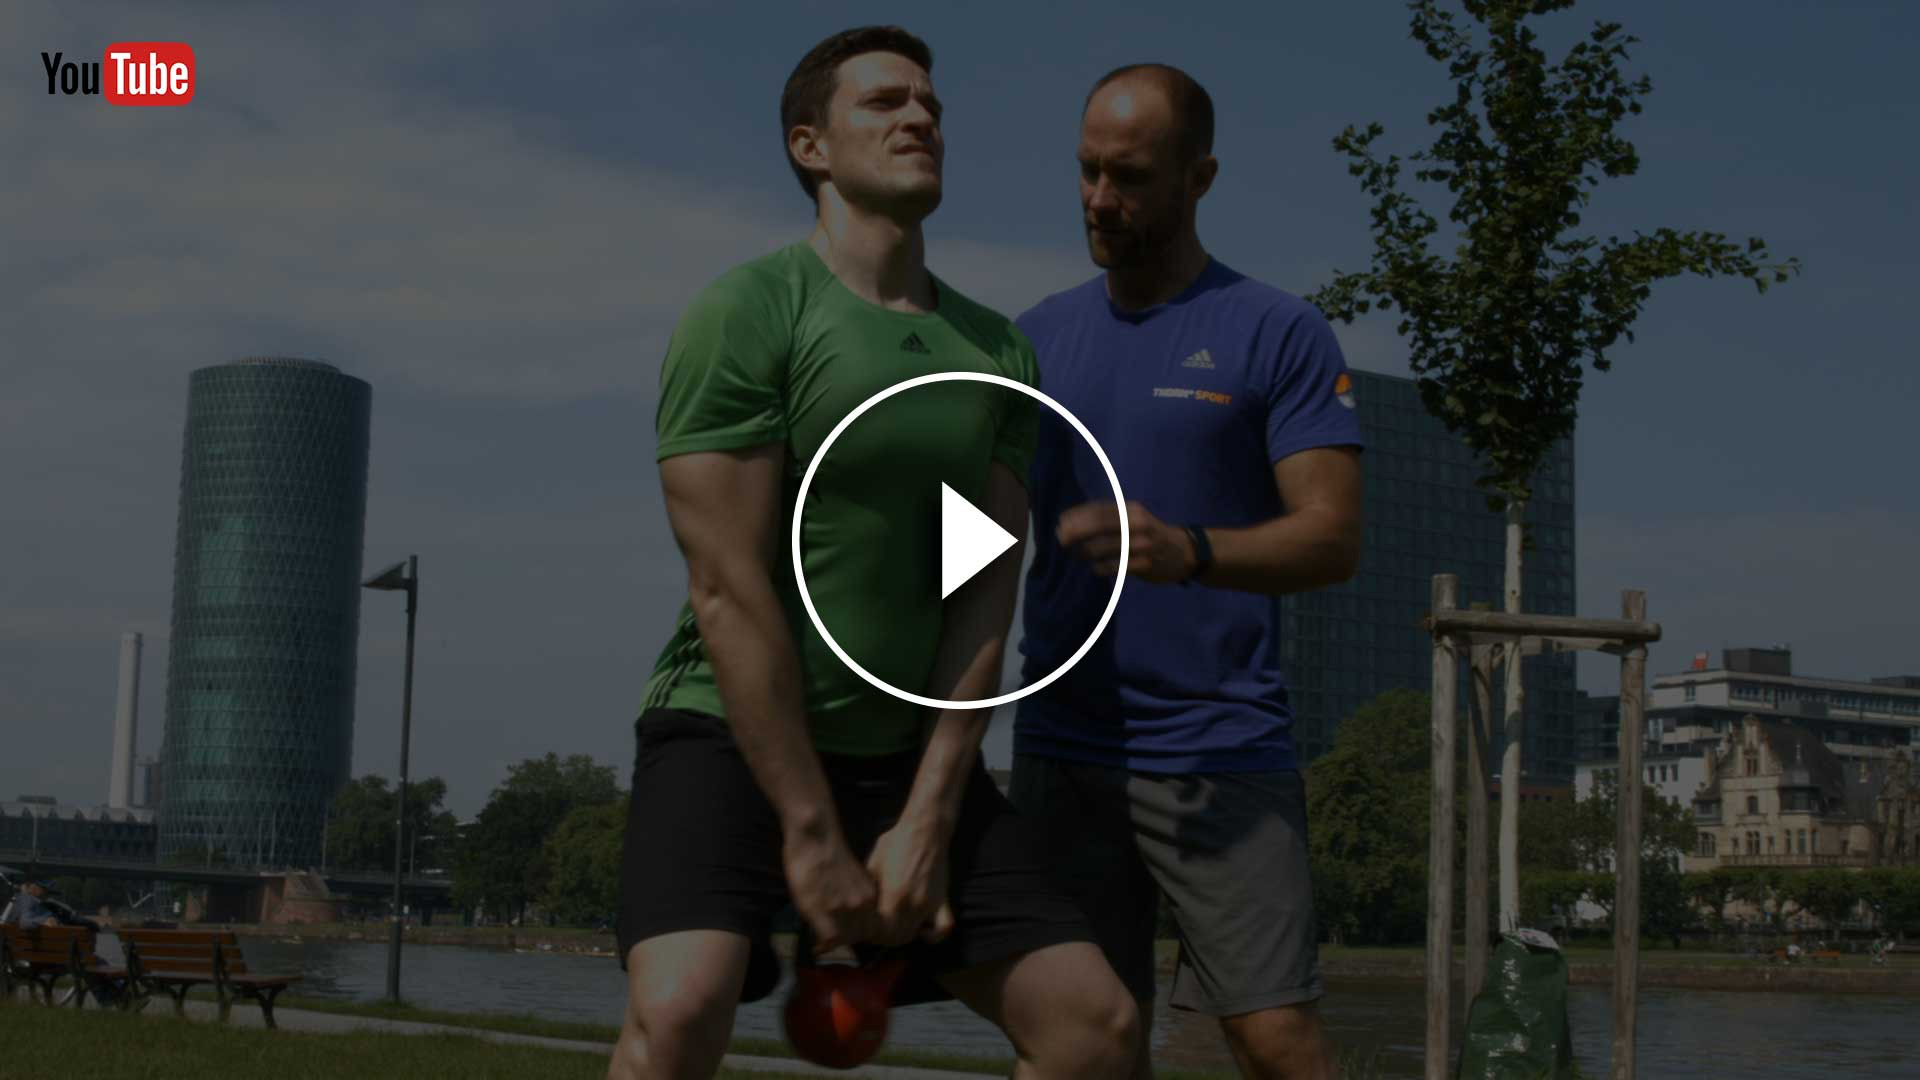 Personal training video